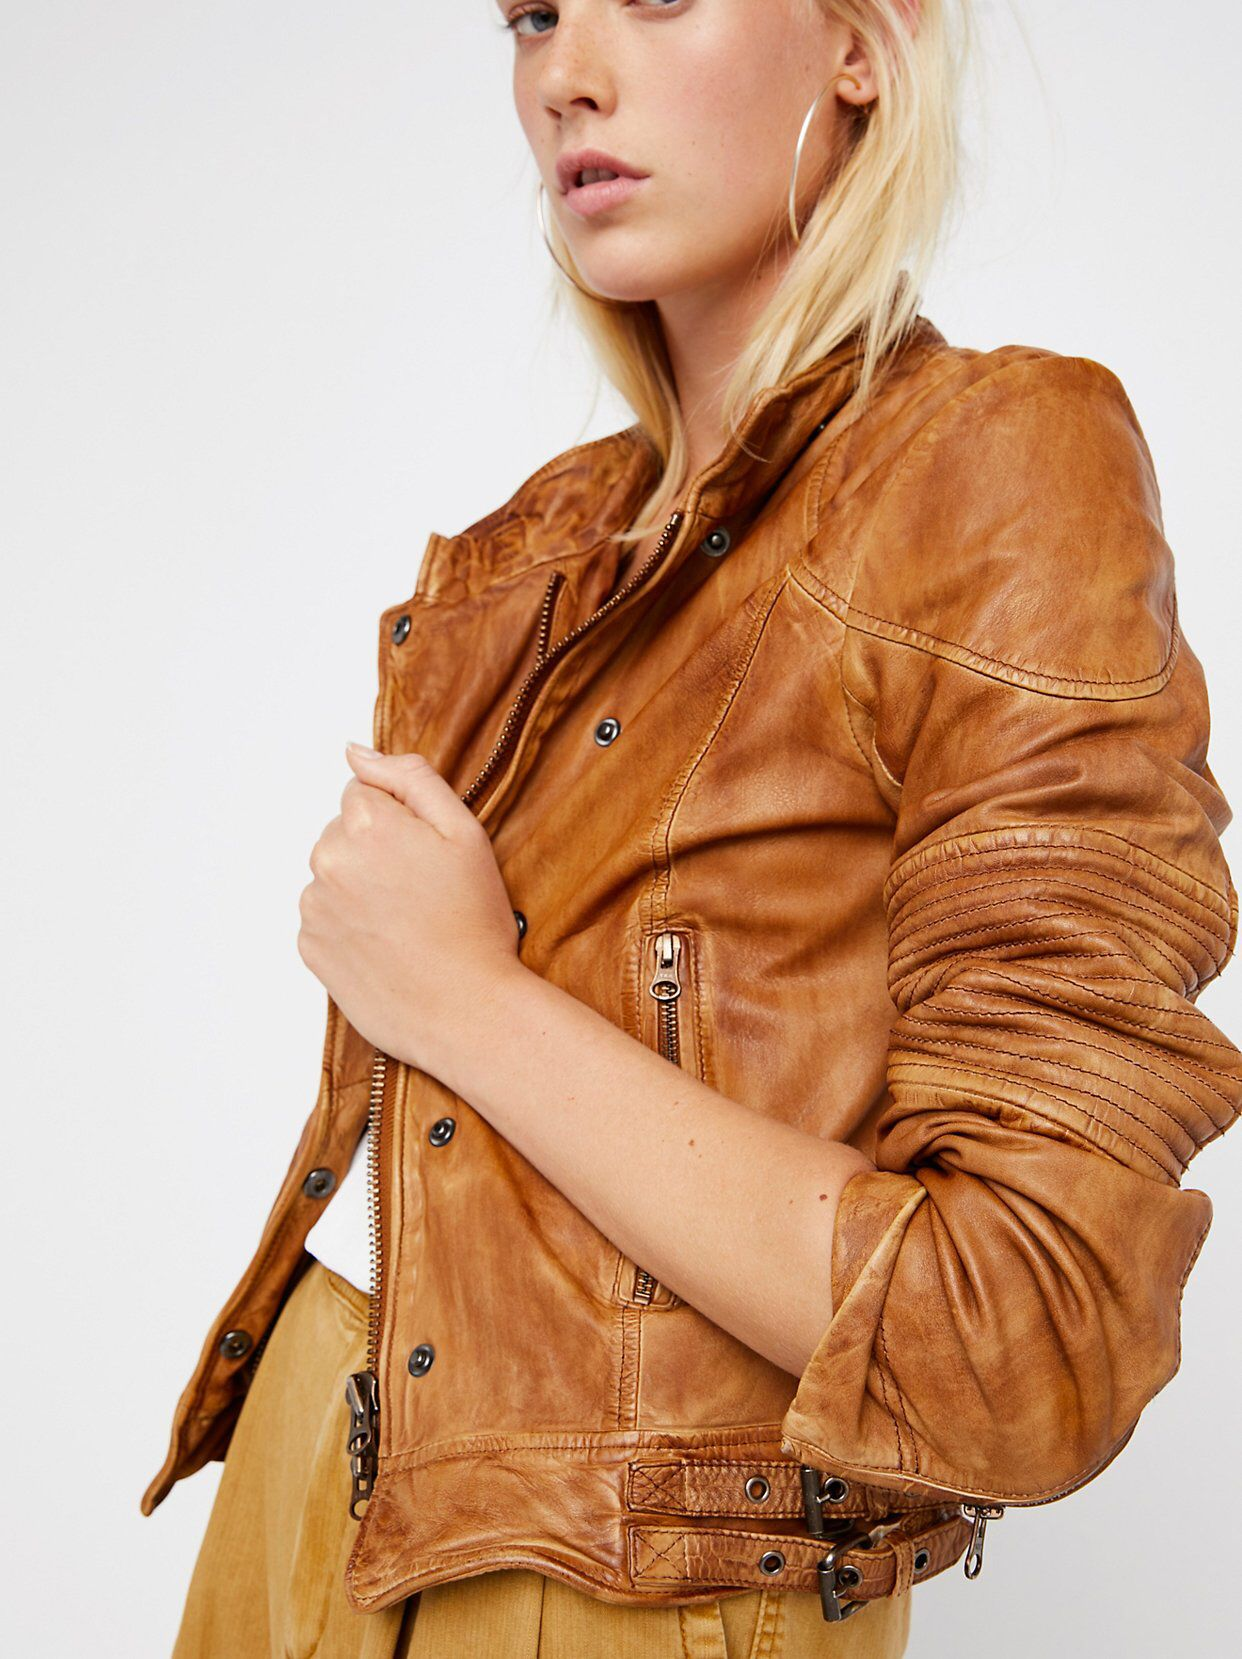 Fitted And Rugged Leather Jacket Free People Leather Jacket Leather Jacket Jackets